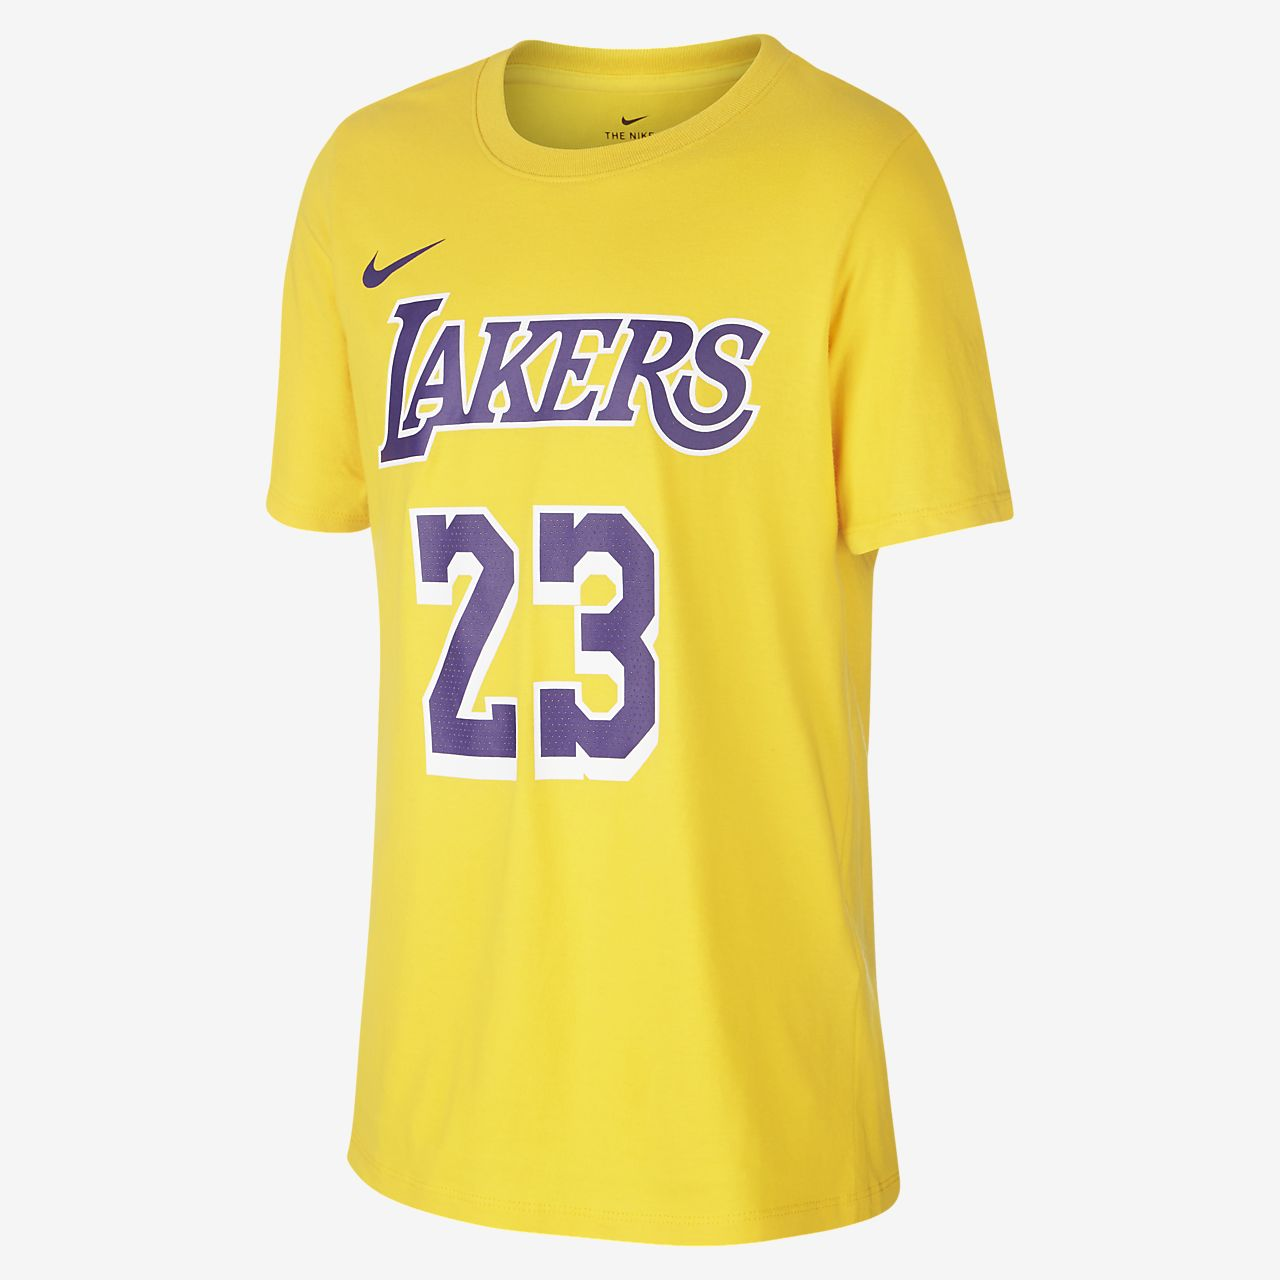 pretty nice 3dee3 06572 jersey de lebron james